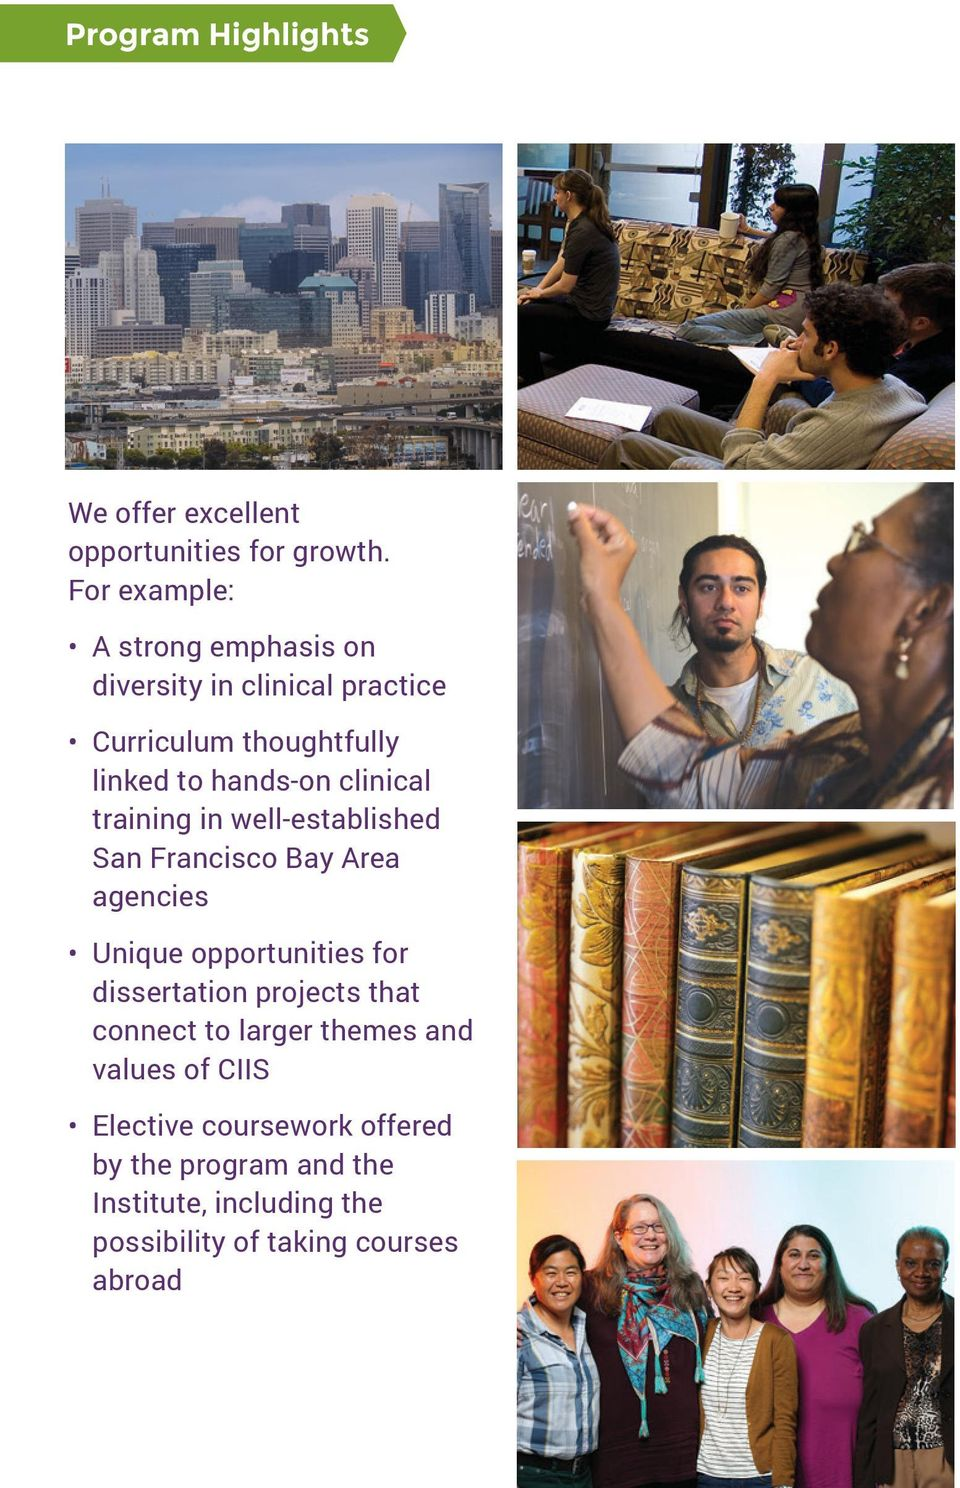 clinical training in well-established San Francisco Bay Area agencies Unique opportunities for dissertation